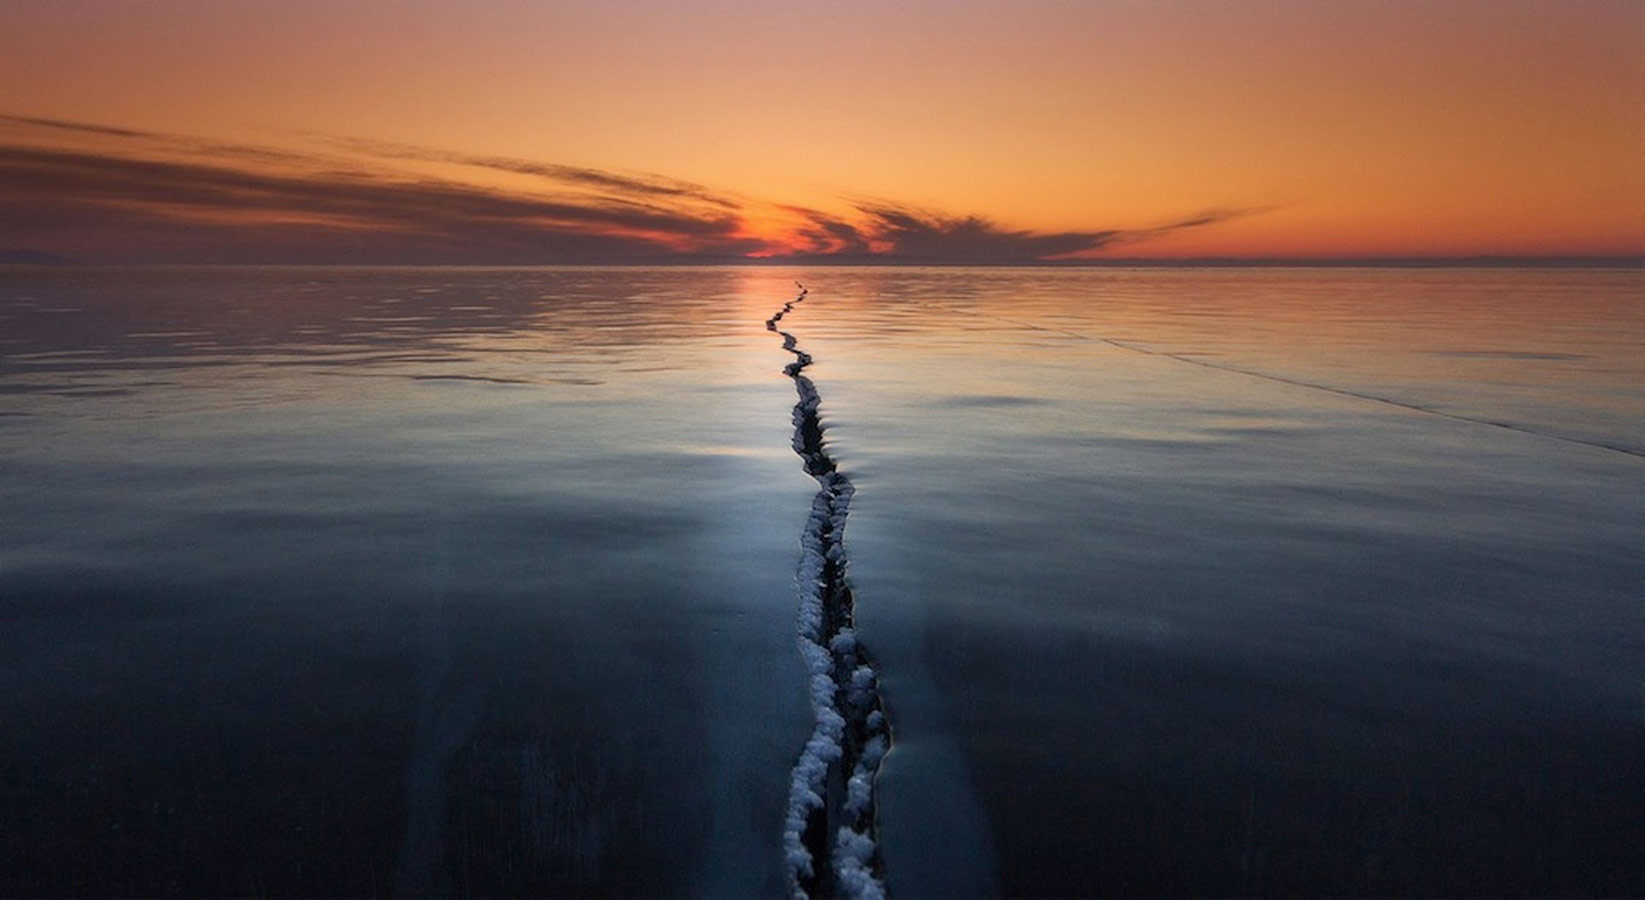 ...In Half By..., © Alexey Trofimov, 3rd Overall Winner, CEPIC Stock Photography Awards